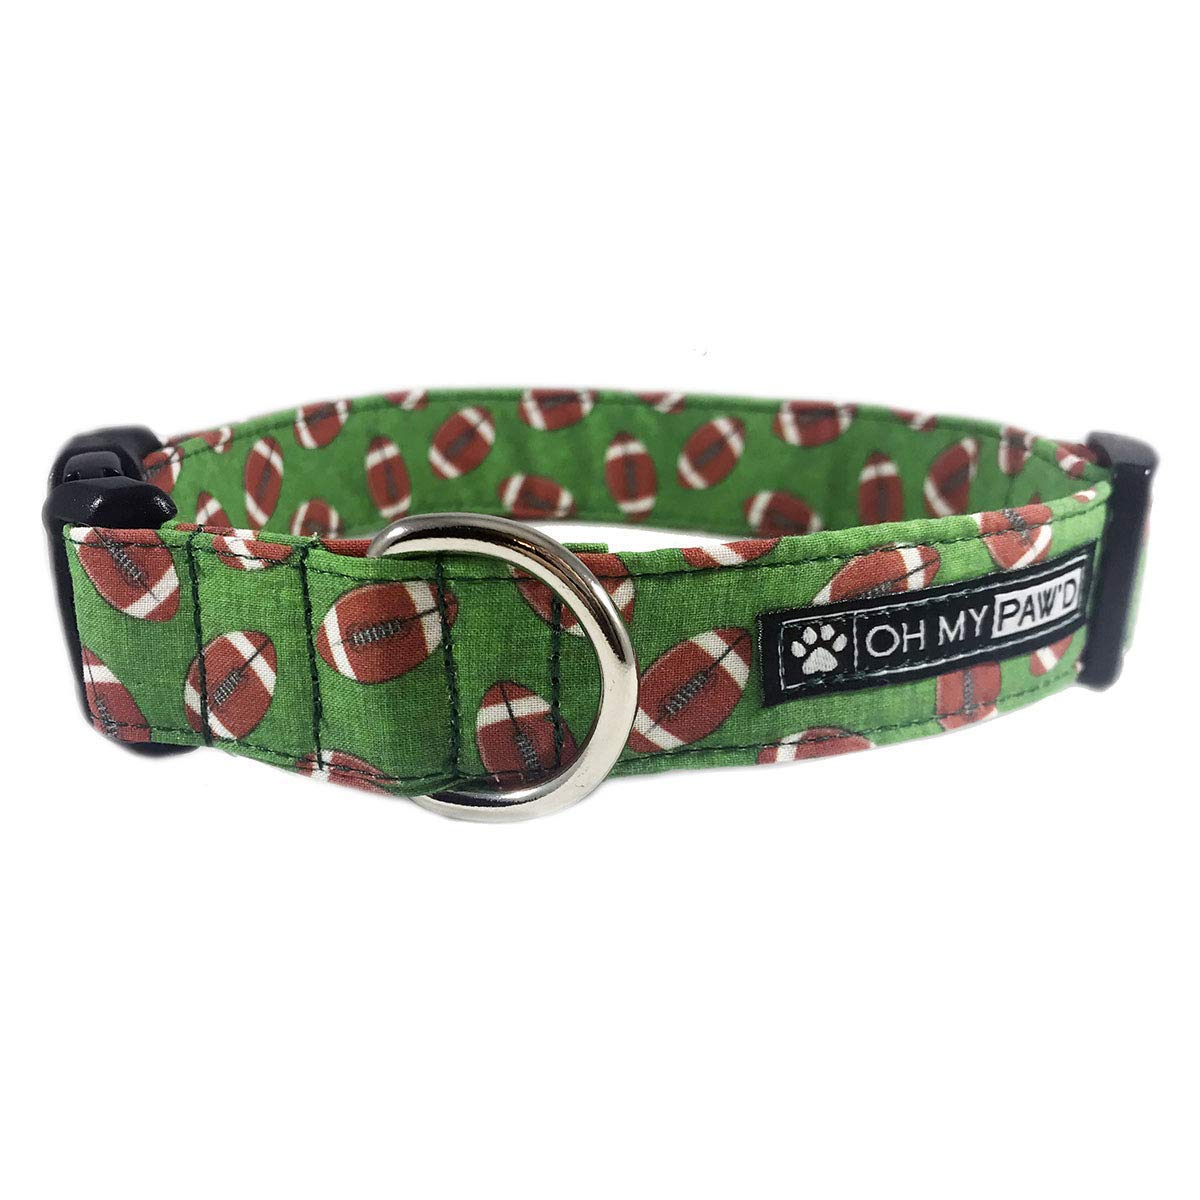 Football Dog or Cat Collar for Pets Size Extra Small with Extra Length 5/8'' Wide and 7-13'' Long by Oh My Paw'd